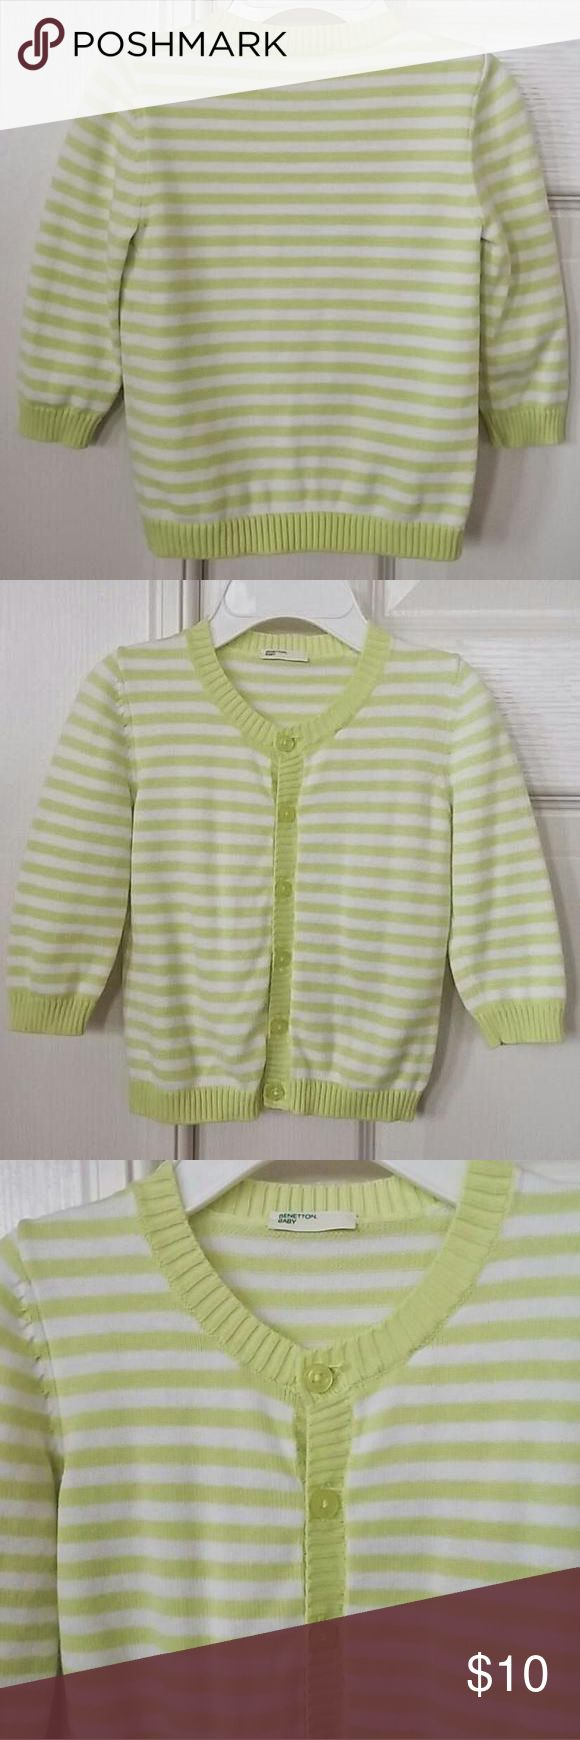 👫Benetton Baby cardigan sweater Benetton Baby cardigan sweater. Neon yellow/green and white stripe. 100% cotton. Size 6-9 mths. Like new condition. Benetton (United Colors of Benetton) Shirts & Tops Sweaters